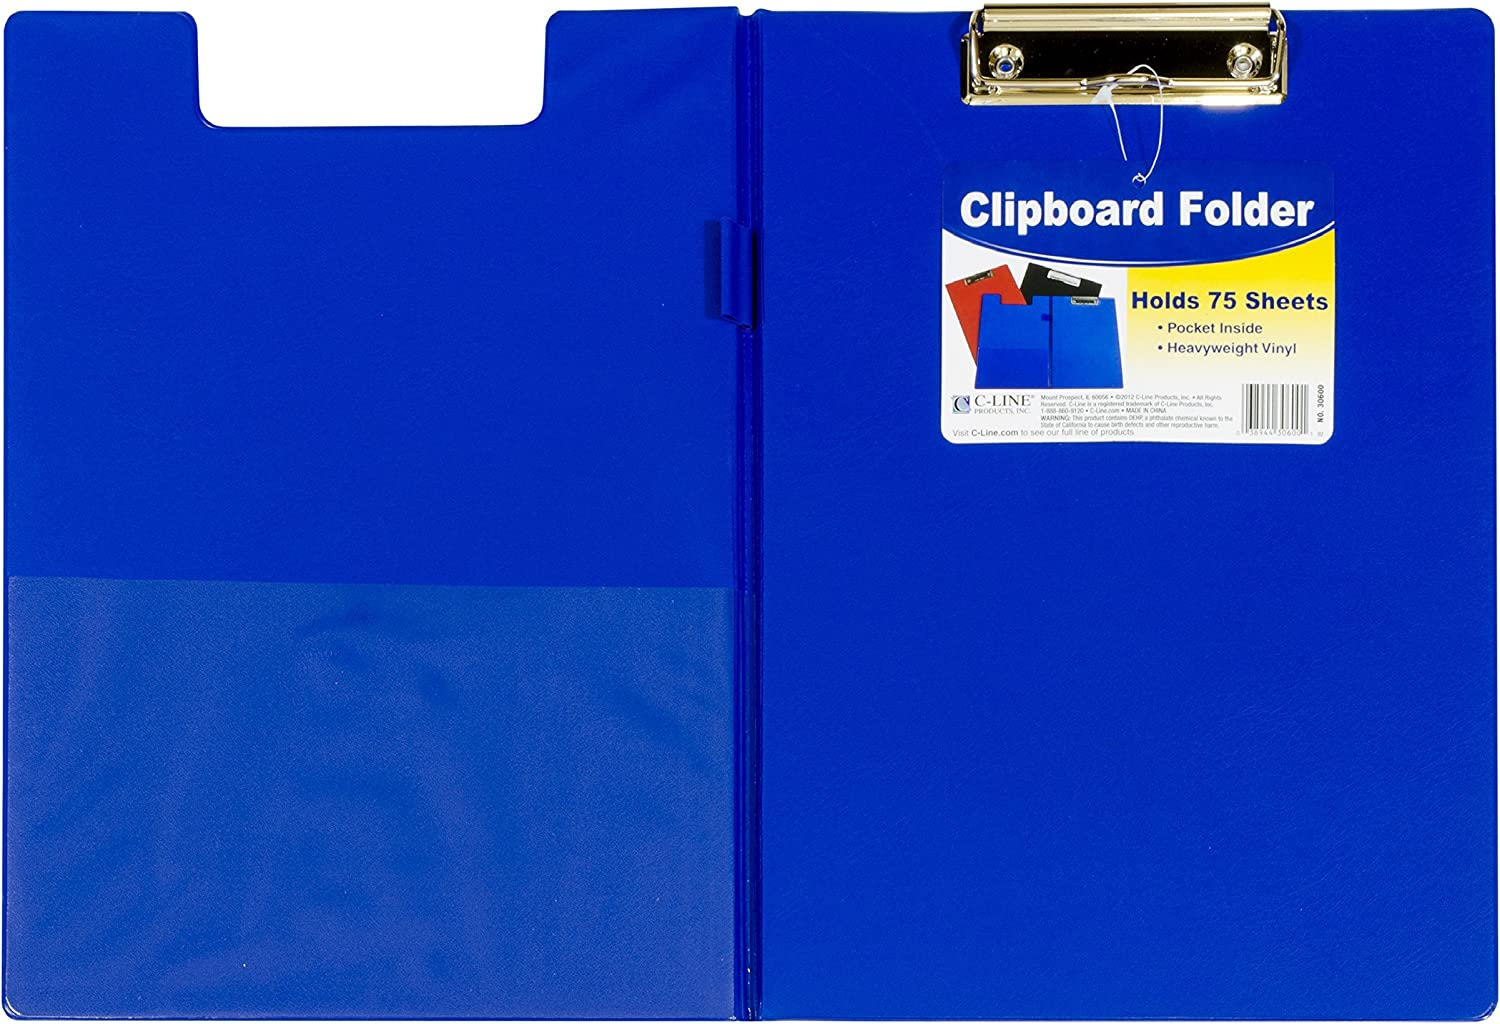 C-Line Clipboard Folder, Letter Size, Holds up to 75 Sheets, 1 Clipboard, Color May Vary (30600)